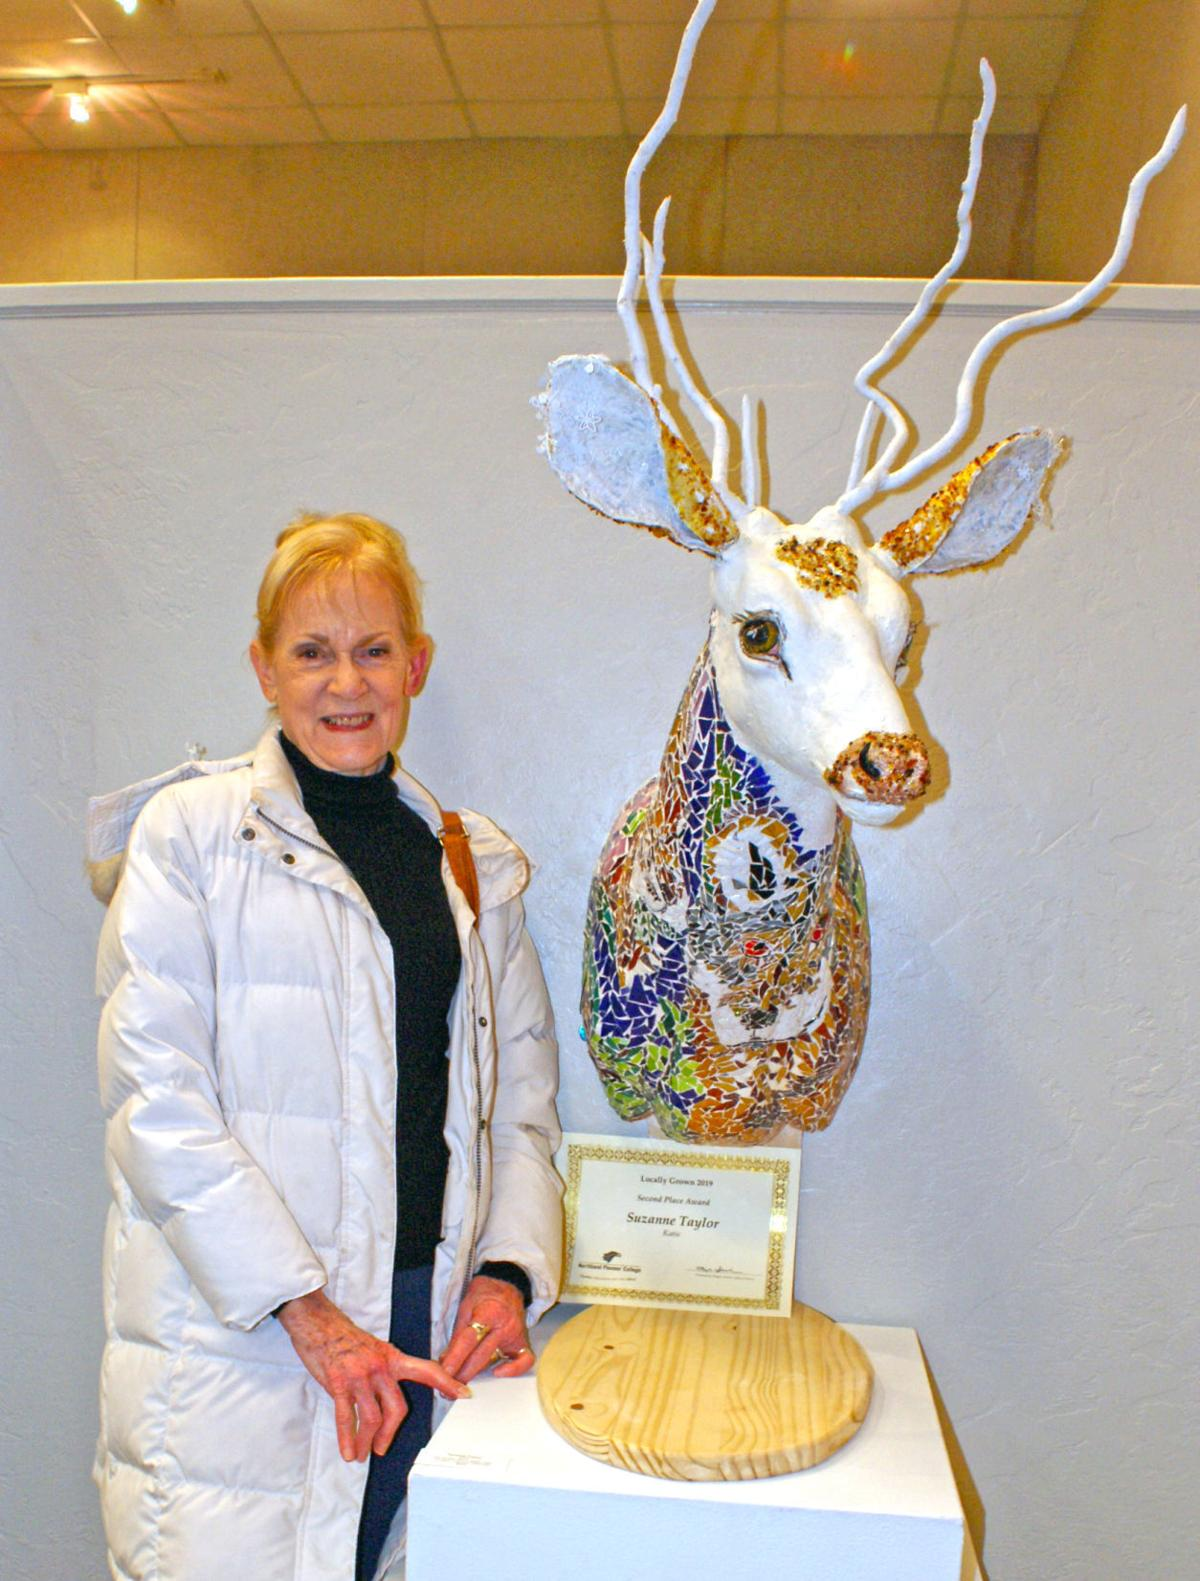 NPC's Locally Grown exhibit full of 'natural' talent